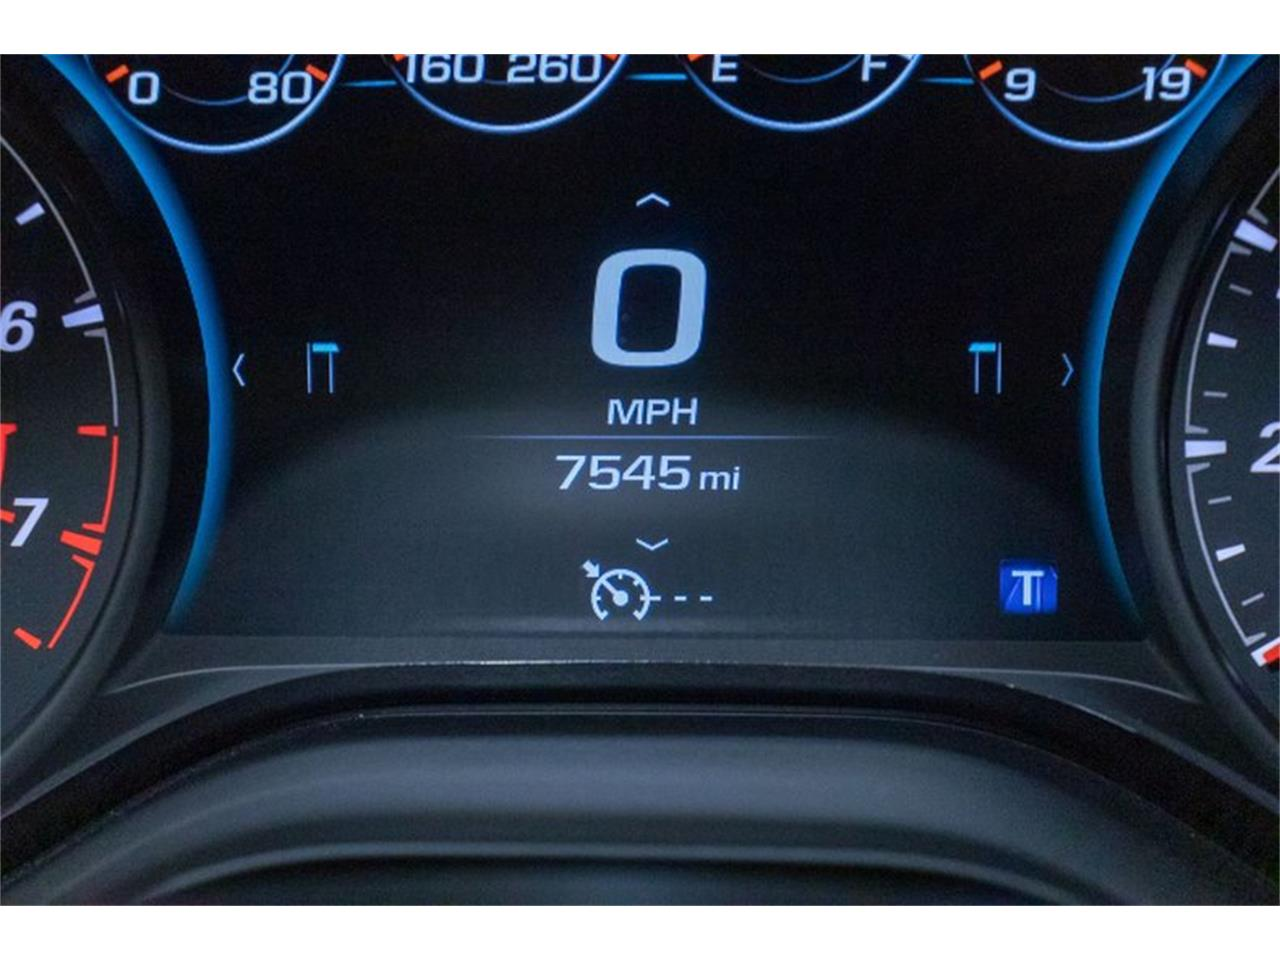 2017 Chevrolet Camaro (CC-1375714) for sale in Kentwood, Michigan